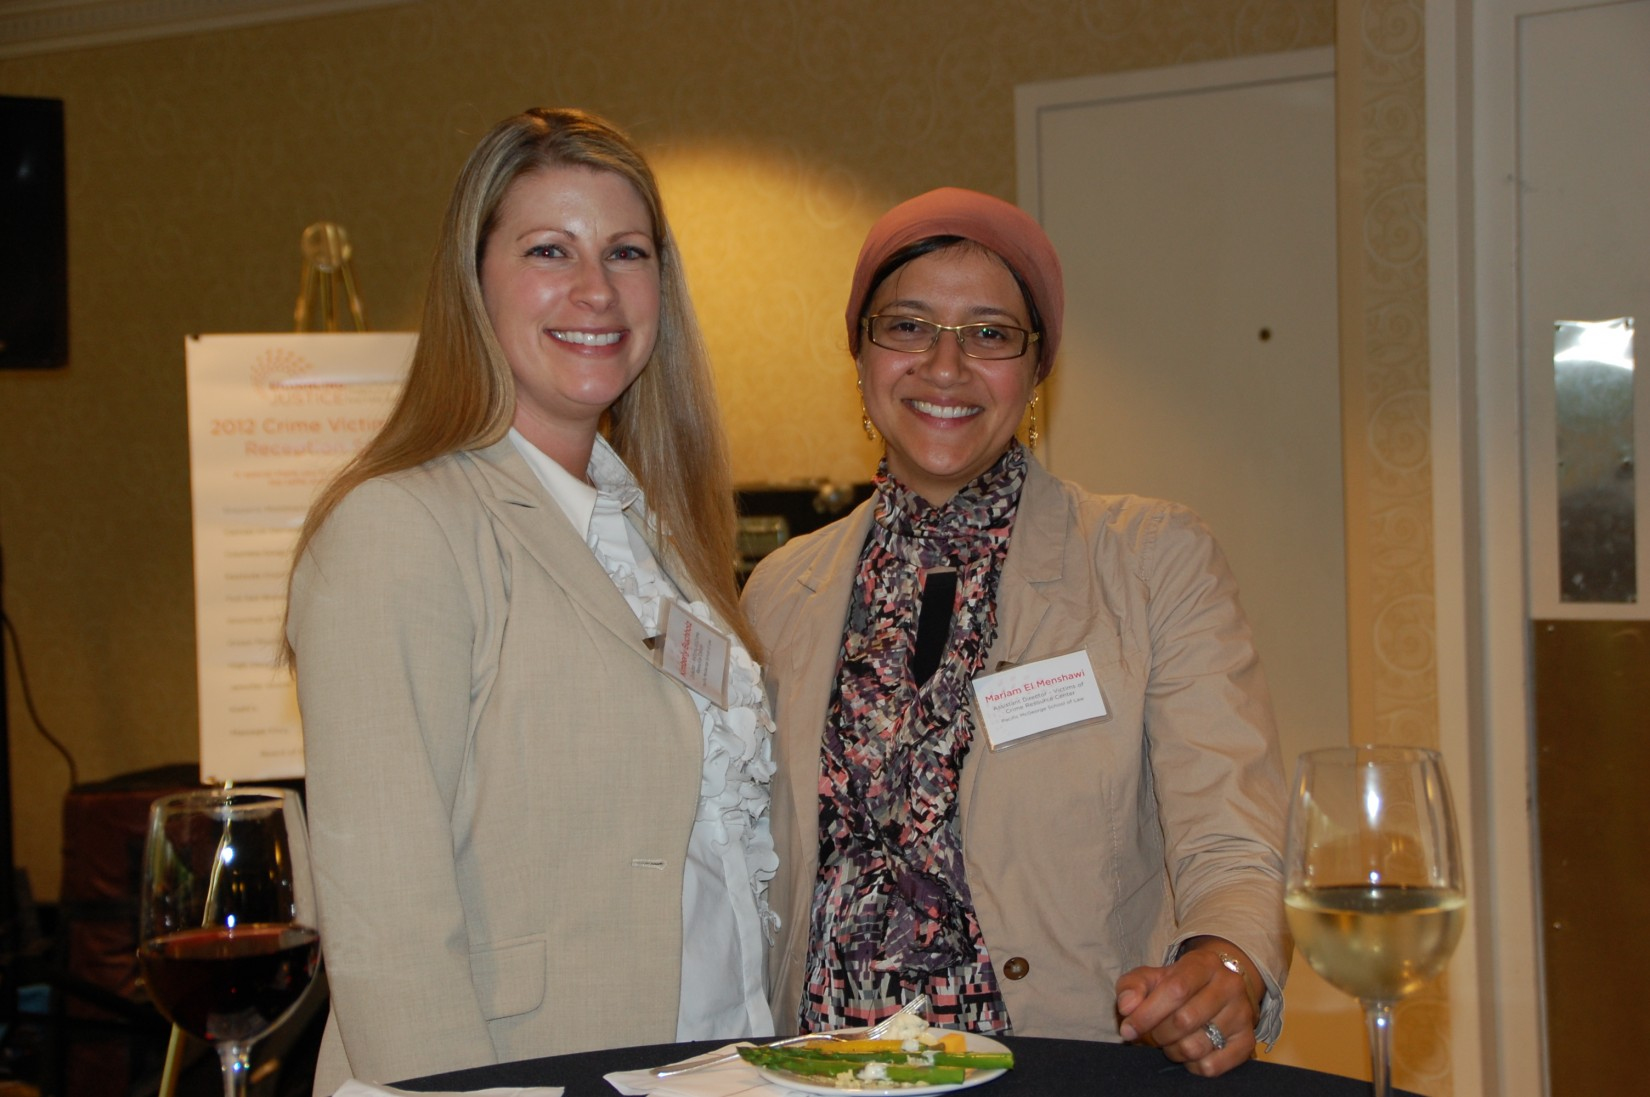 Attendees at the Crime Victims' Rights Reception on the first evening of the Conference